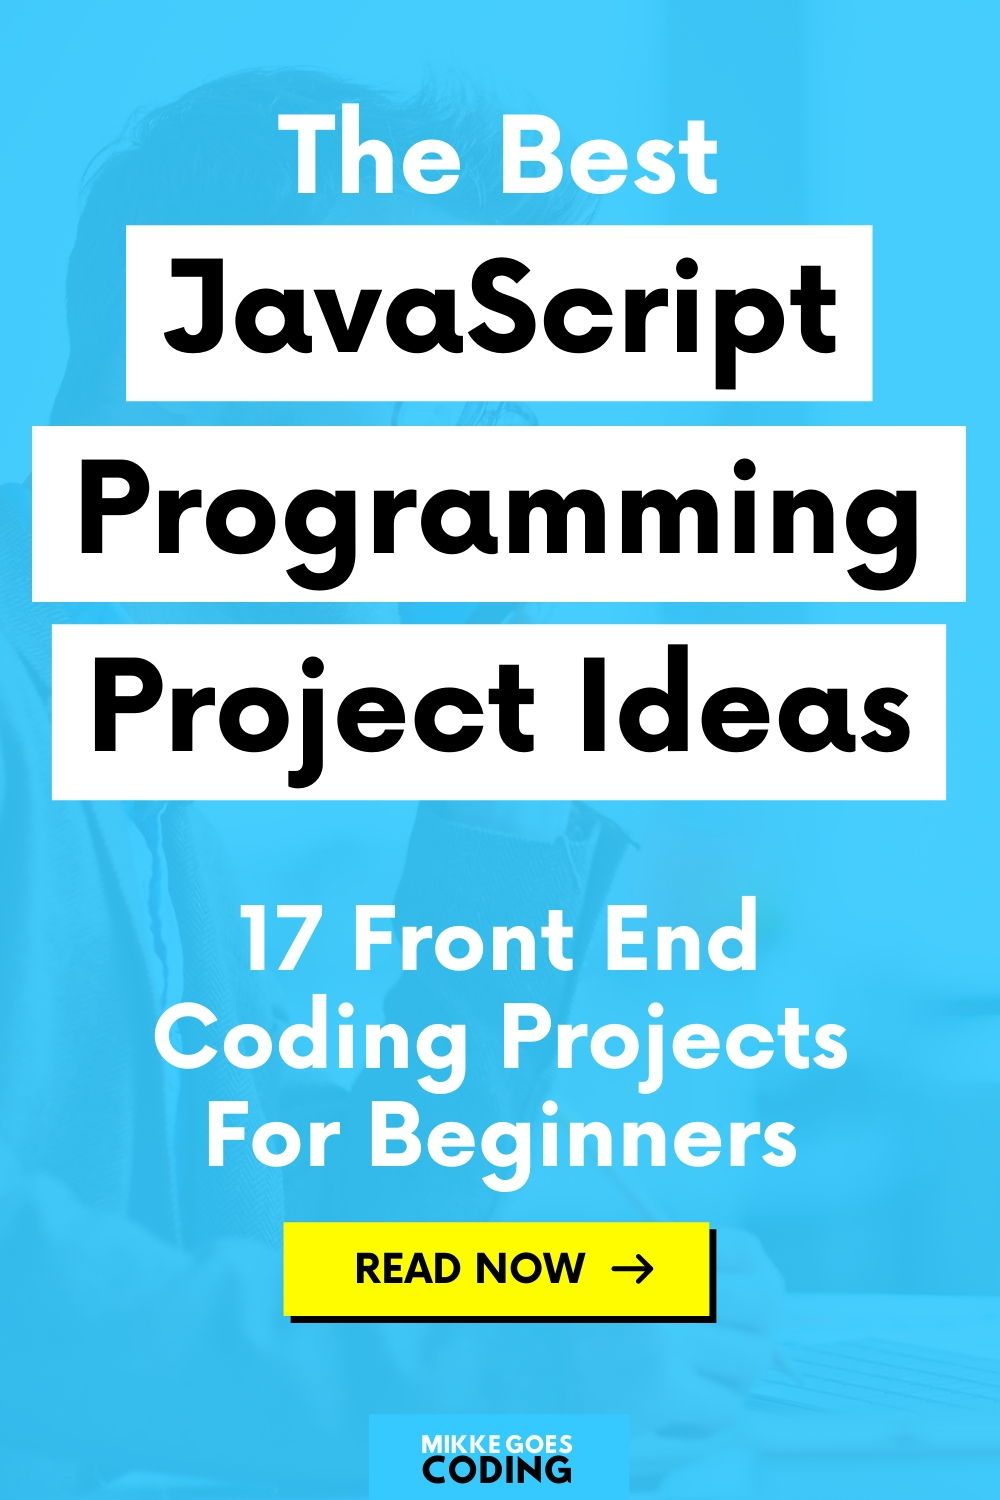 Fun JavaScript Coding Project Ideas for Beginners Practice Front End Web Development in 2020